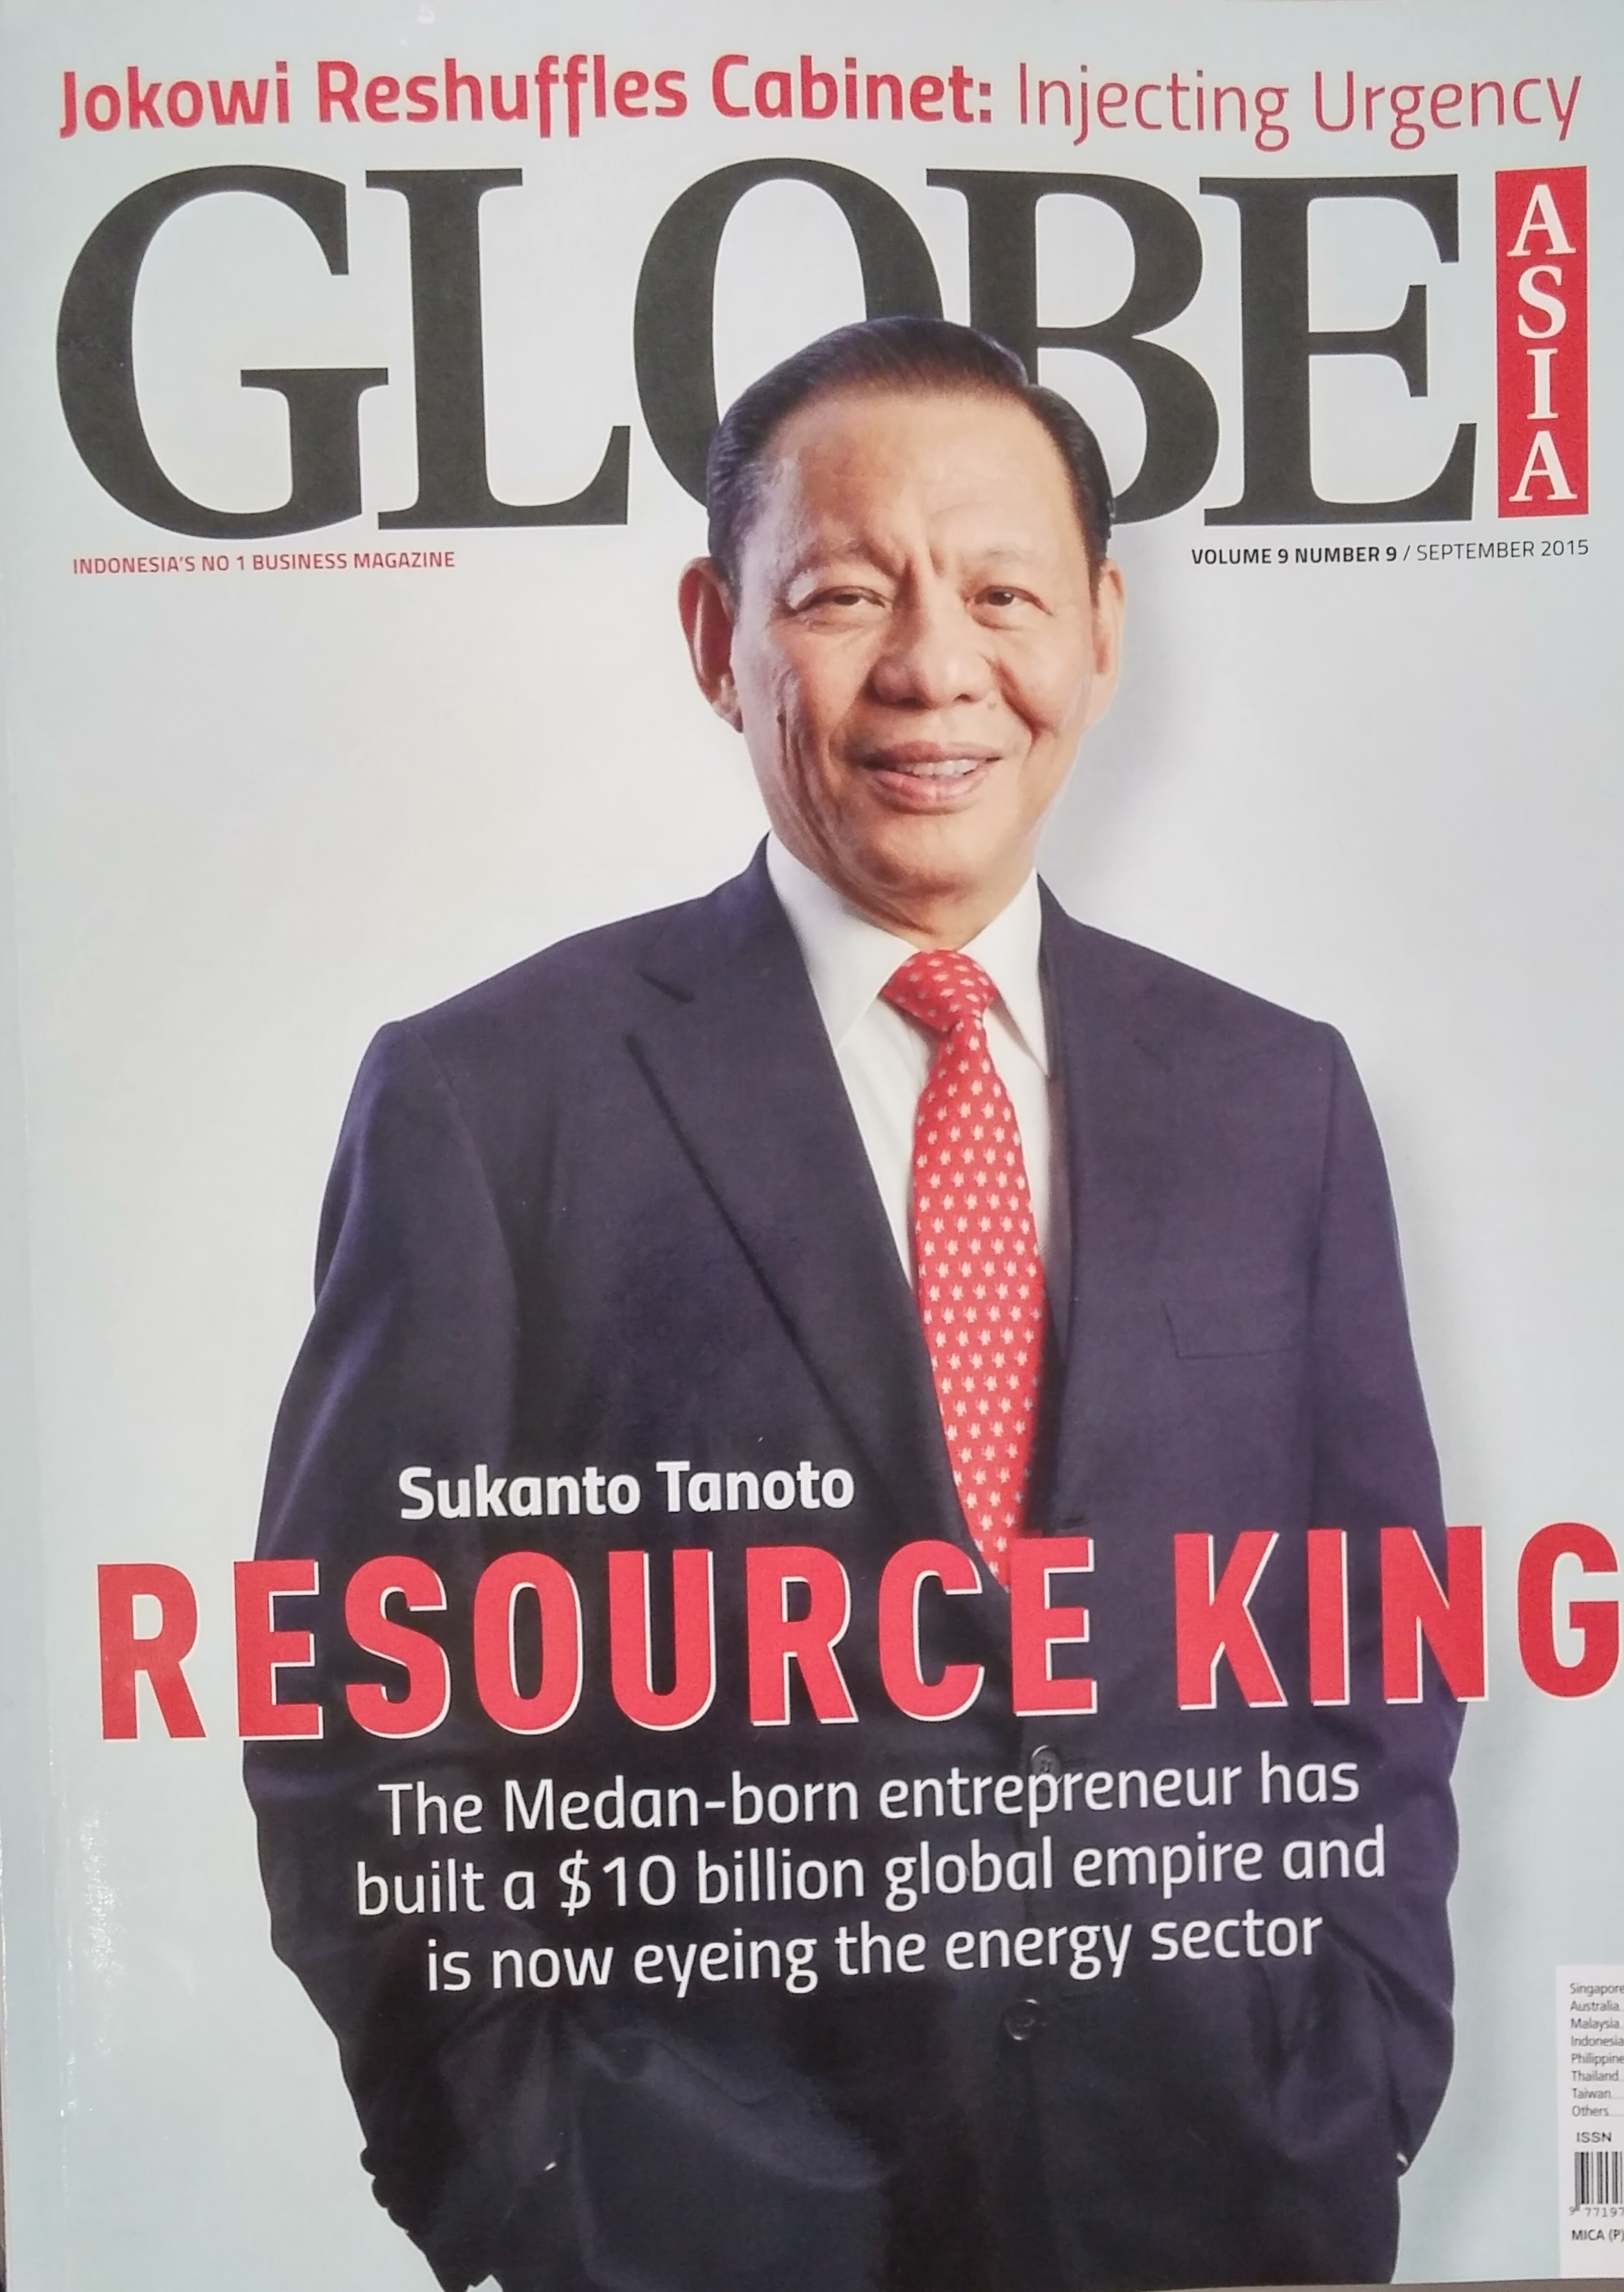 Sukanto Tanoto - The Resource King is a man who has walked the ground and led on the ground